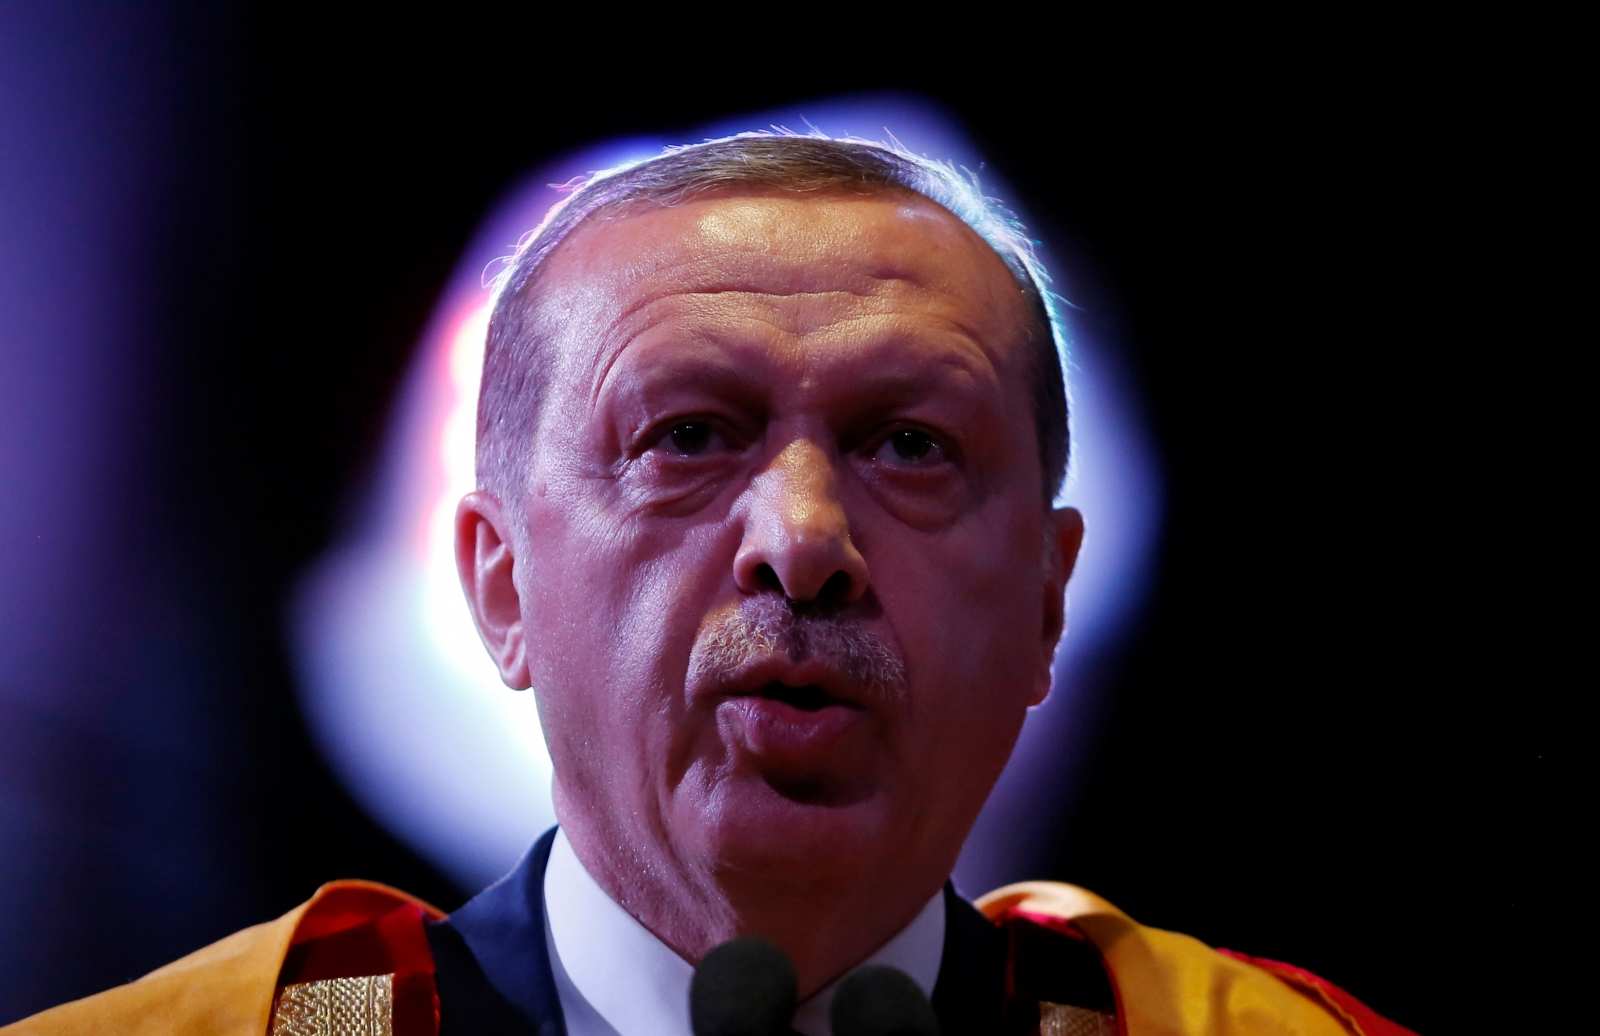 Turkey Erdogan honorary doctorate